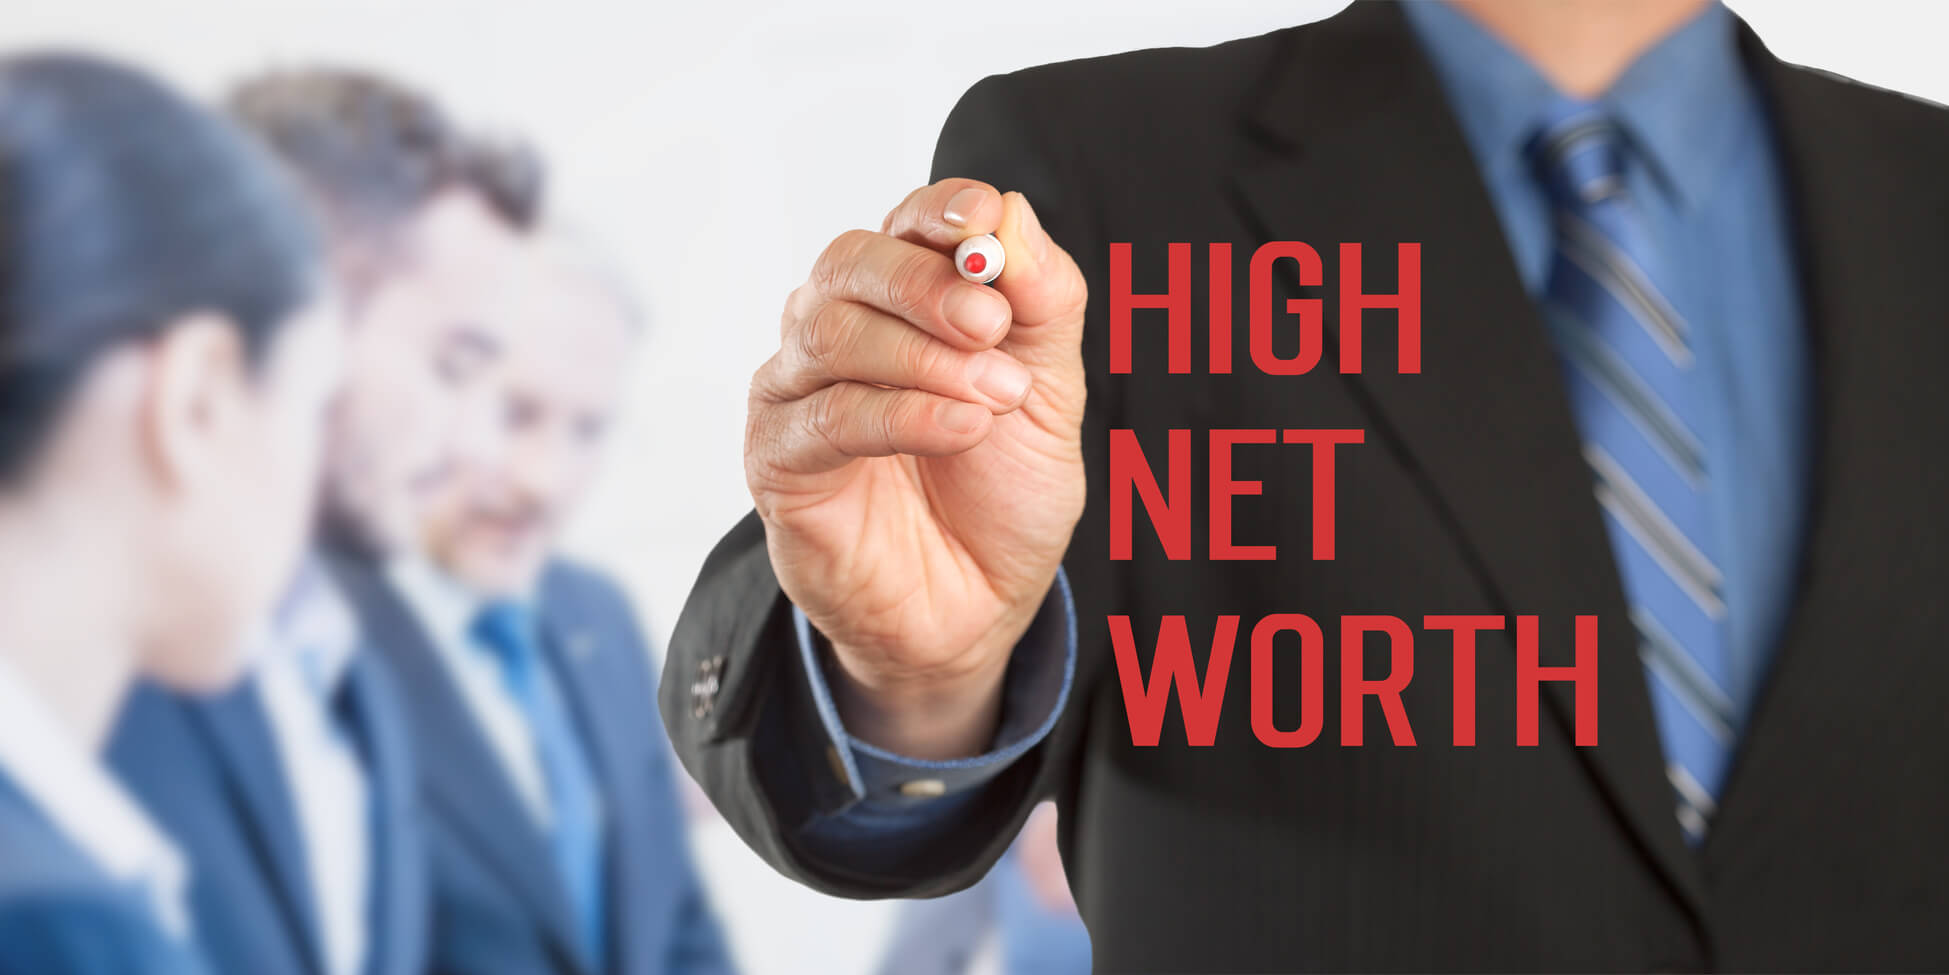 high net worth Lists of the super affluent and wealthy americans with very high net worth and high income, exclusive property owners, and luxury item owners and buyers.